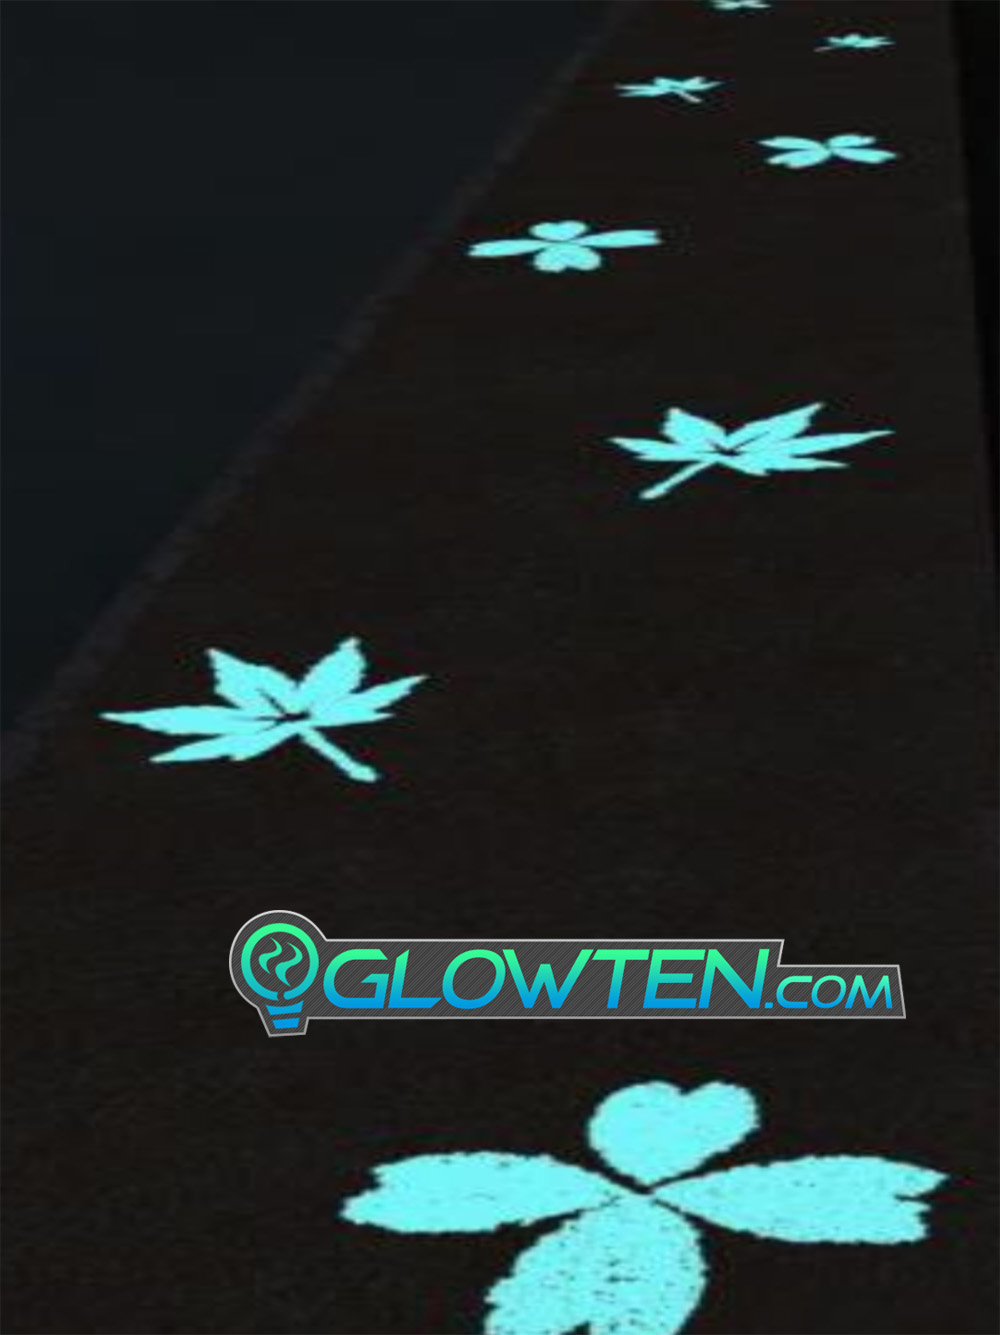 GLOWTEN.com - Flourescent Green Phosphorescent Shining Green Glow Lite Decorate Your Garden Path, Walkway, Backyard, Bird Fountain, Or Flower Beds Luminous Stones Pebbles Medium Natural Glowing In The Dark Ground Glow Rocks Arts N Crafts Decoration Eco Friendly Material picture photo cap preview pic image search 3